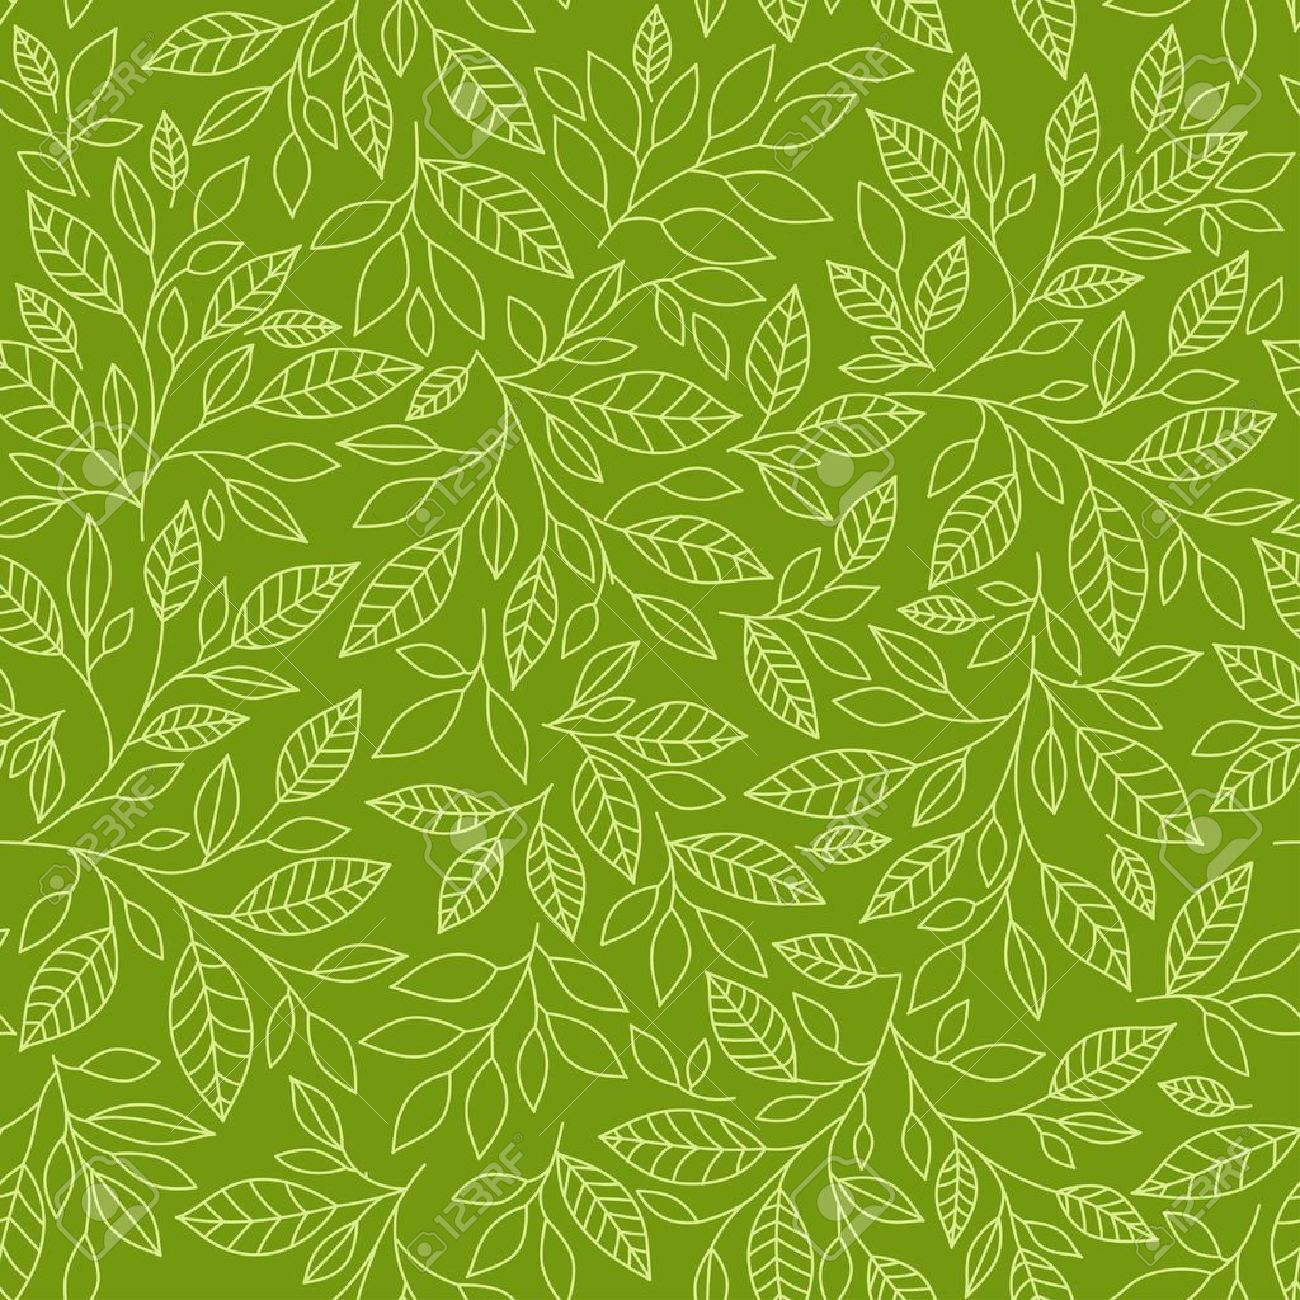 Seamless pattern of stylized leaves on a green background - 19878048